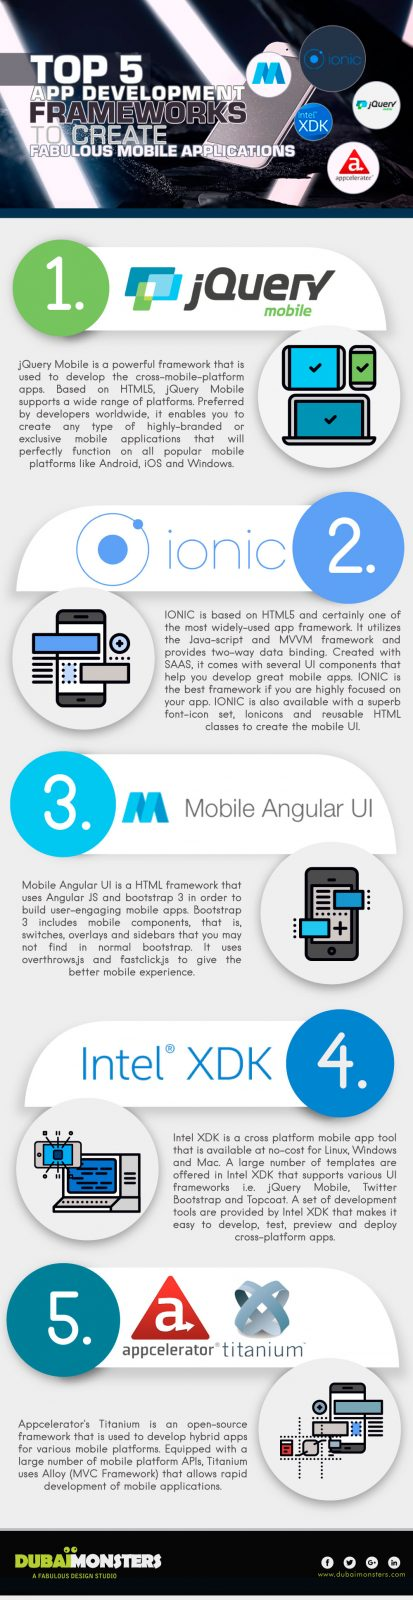 Top 5 App Development Frameworks to Create Fabulous Mobile Applications - Infograhics